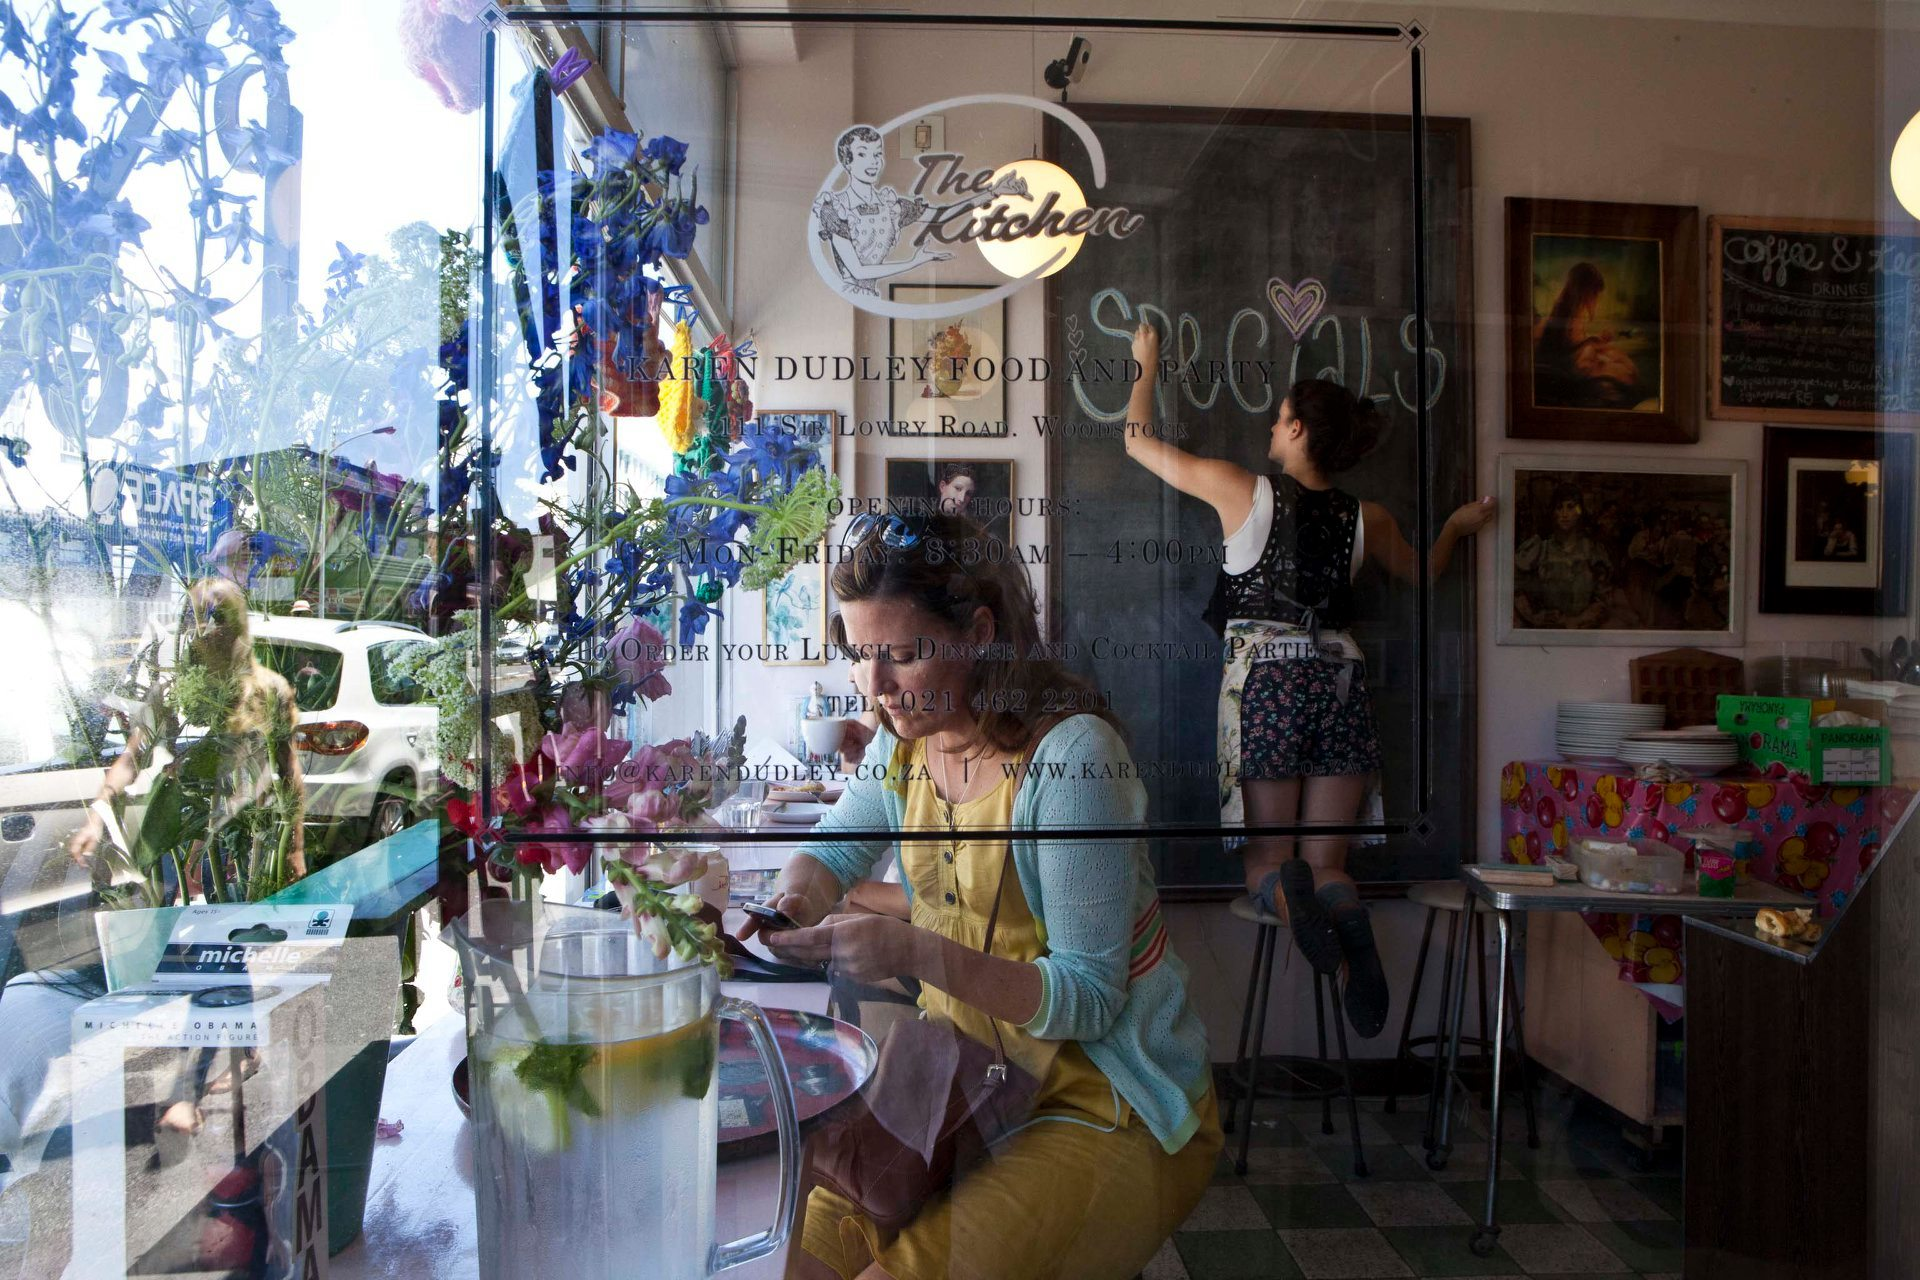 Beloved The Kitchen closes its doors - CapeTown ETC